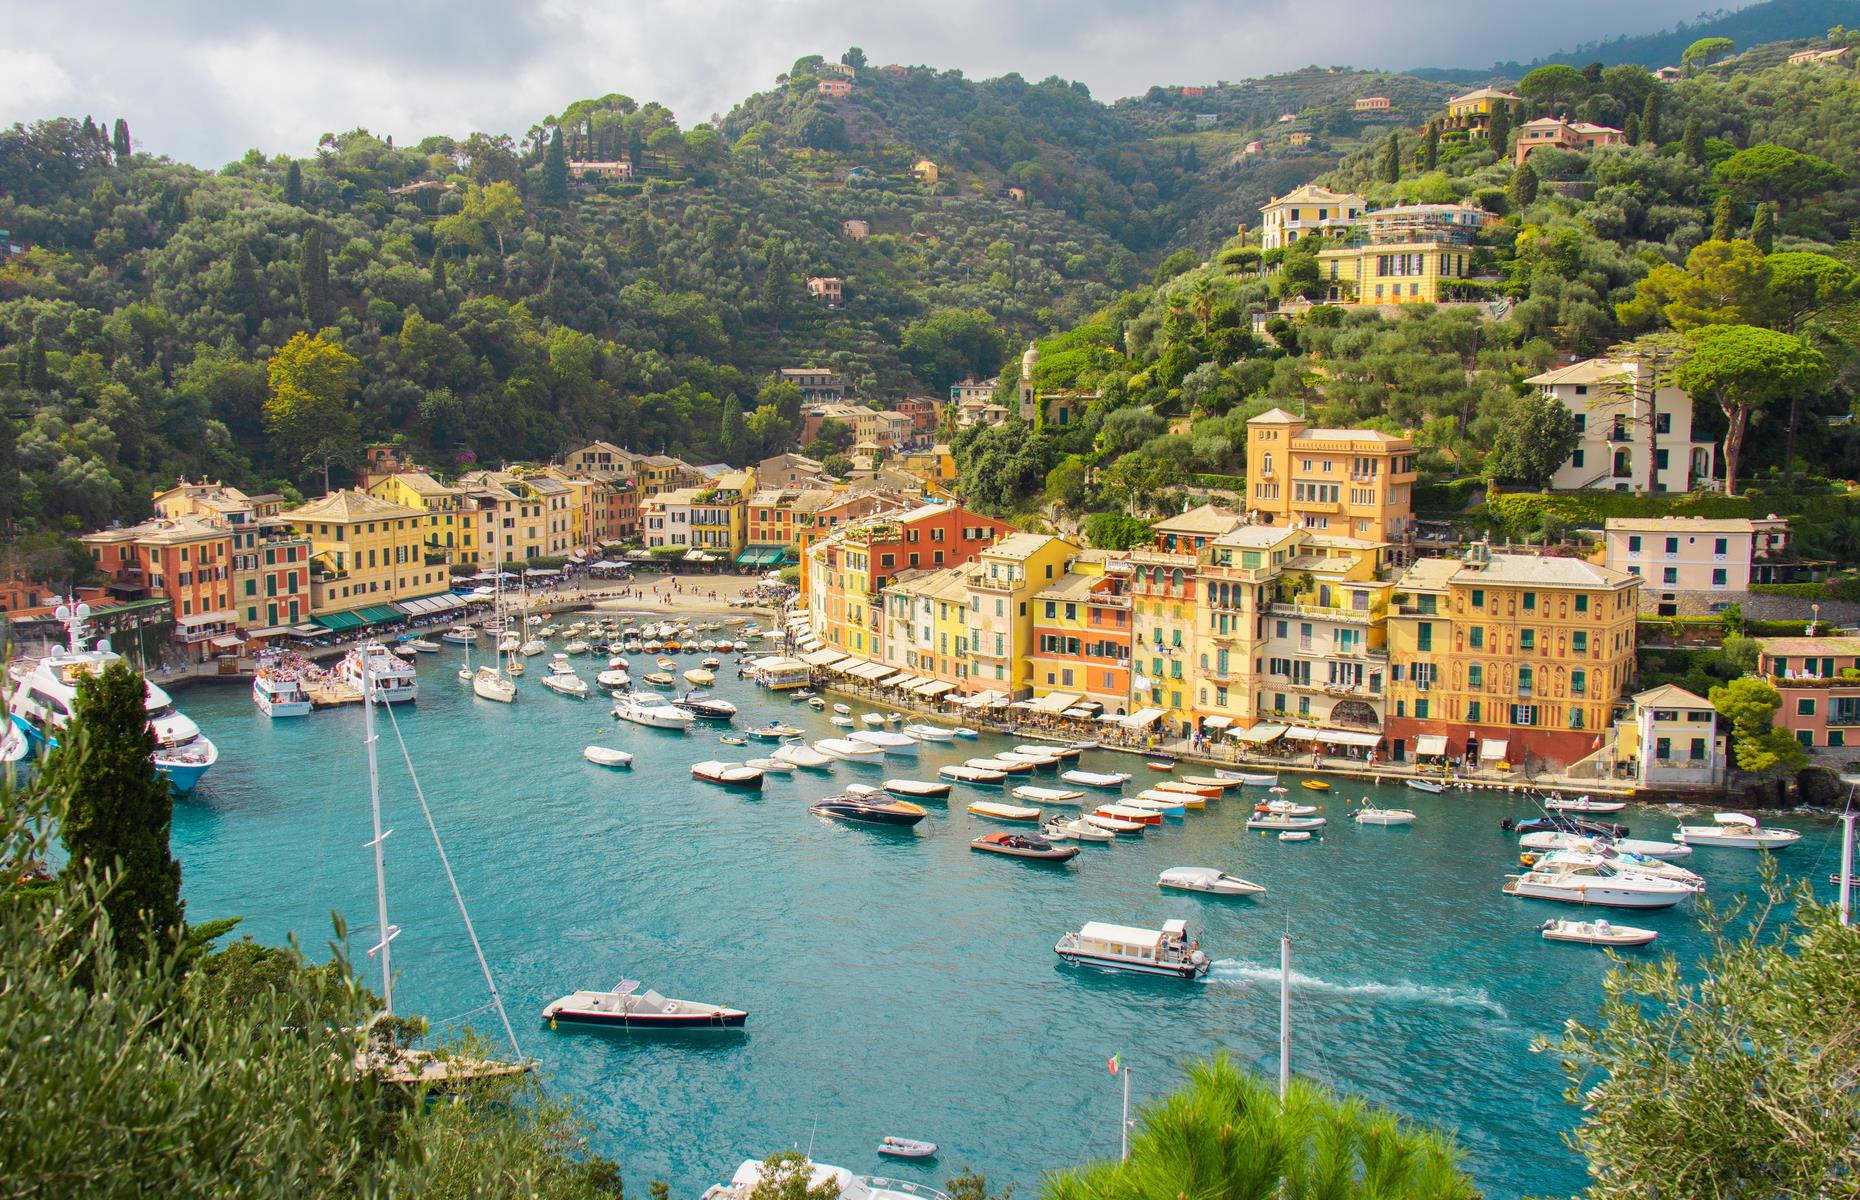 Slide 31 of 31: A former fishing village turned fashionable port town, Portofino draws in visitors with its pretty pastel-colored houses and honeysuckle-clad hills overlooking a dazzling harbor. Situated on its own peninsula on the northeast coast of Italy, it's the perfect spot for panoramic views over the Italian Riviera. These are Europe's most charming towns and villages.